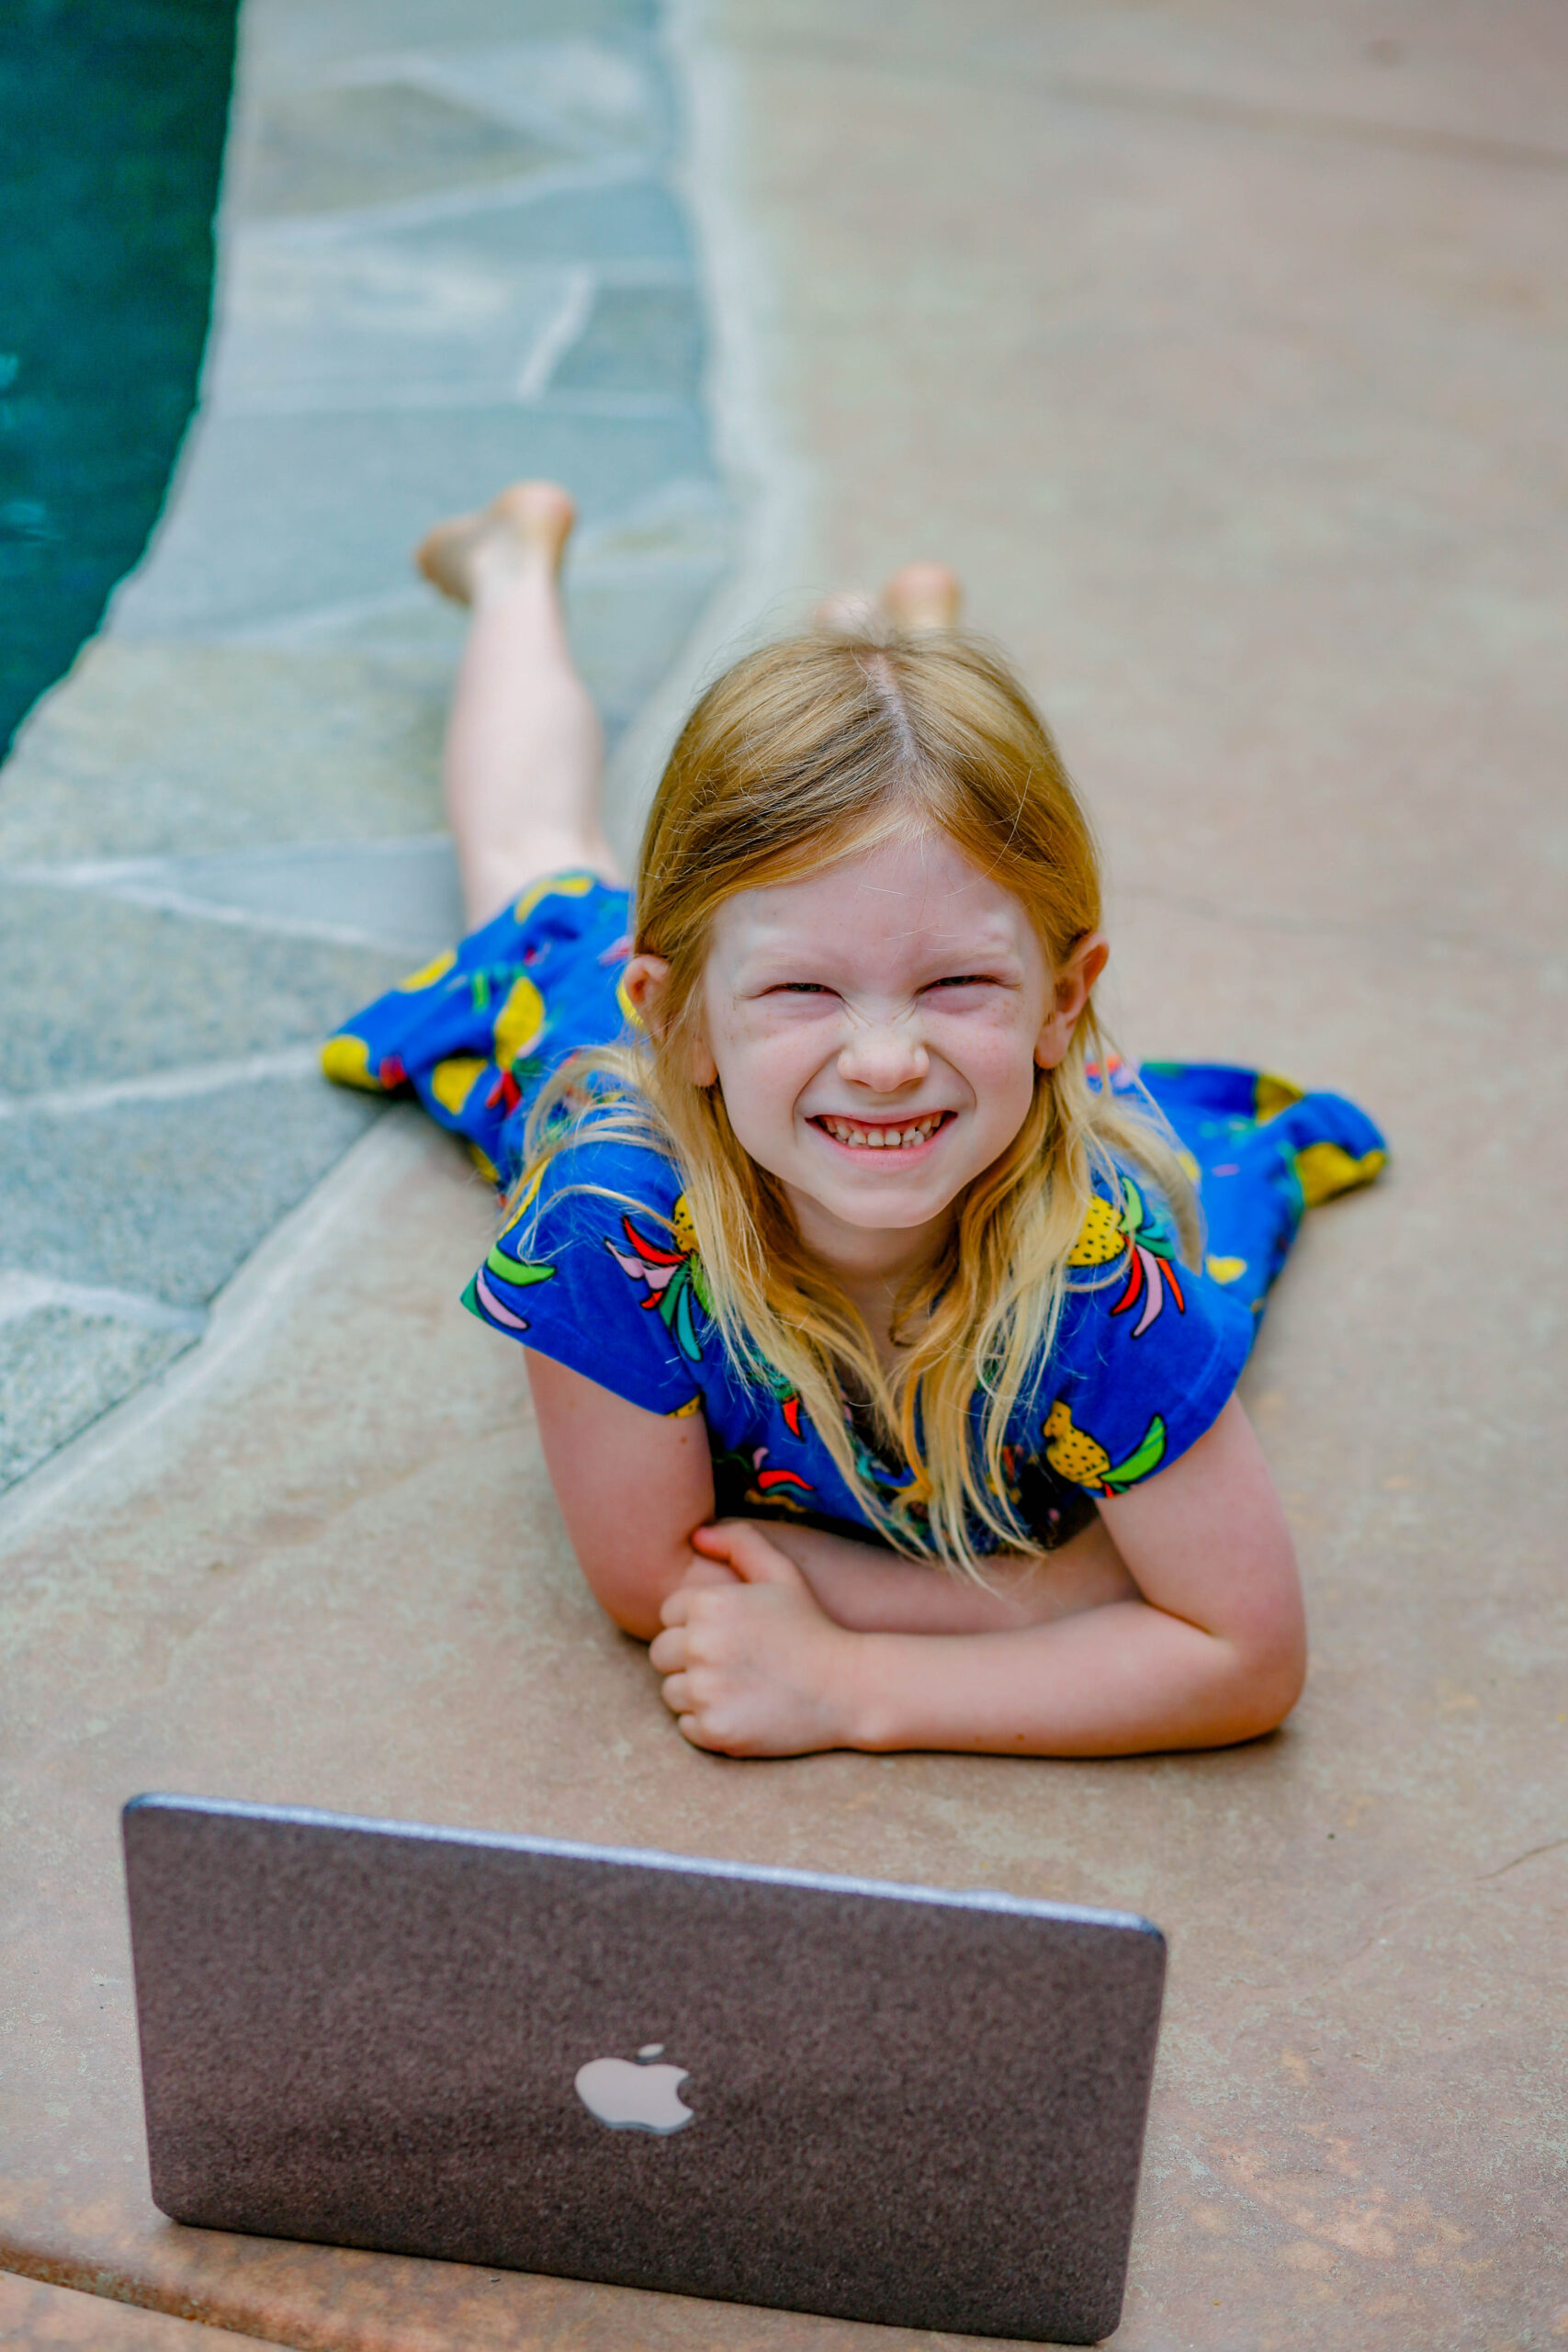 Online Summer Camp: 7 tips to make it successful